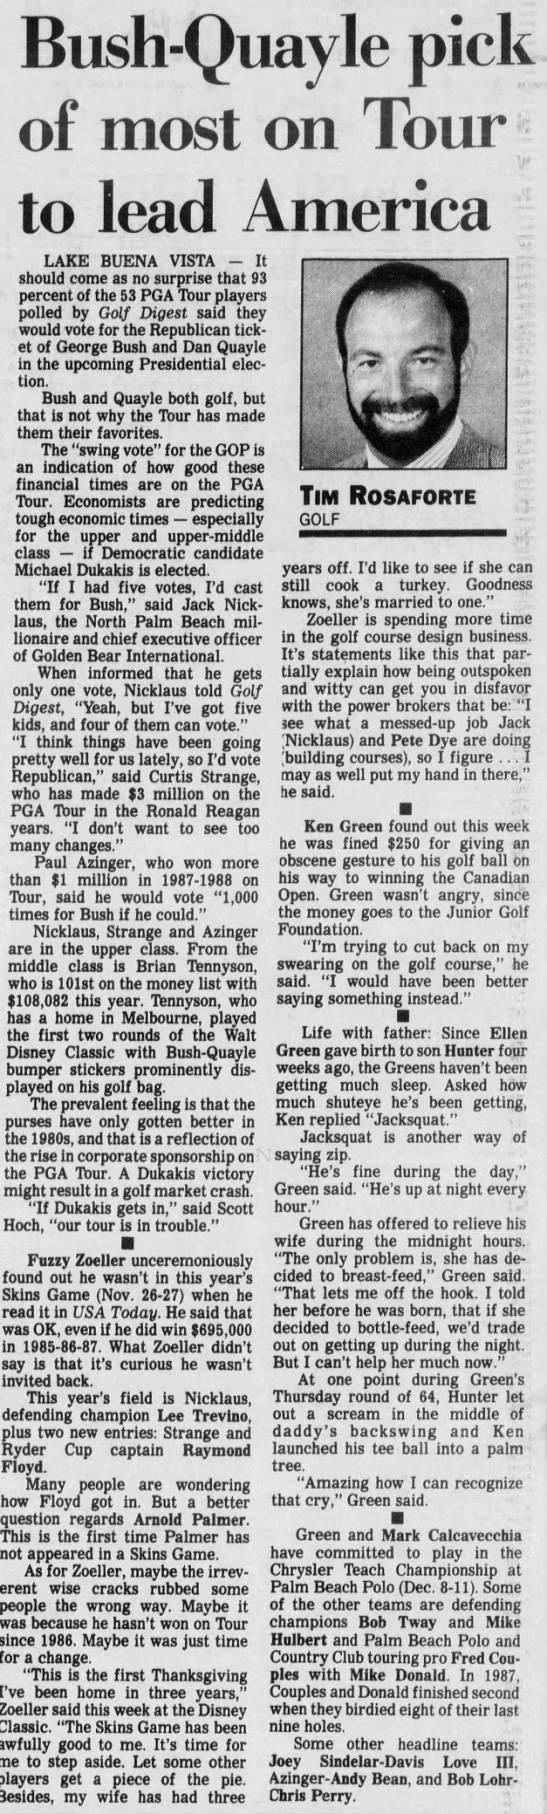 Sunday October 30, 1988 The Palm Beach Post - Bush-Quayle pick of most on Tour to lead...